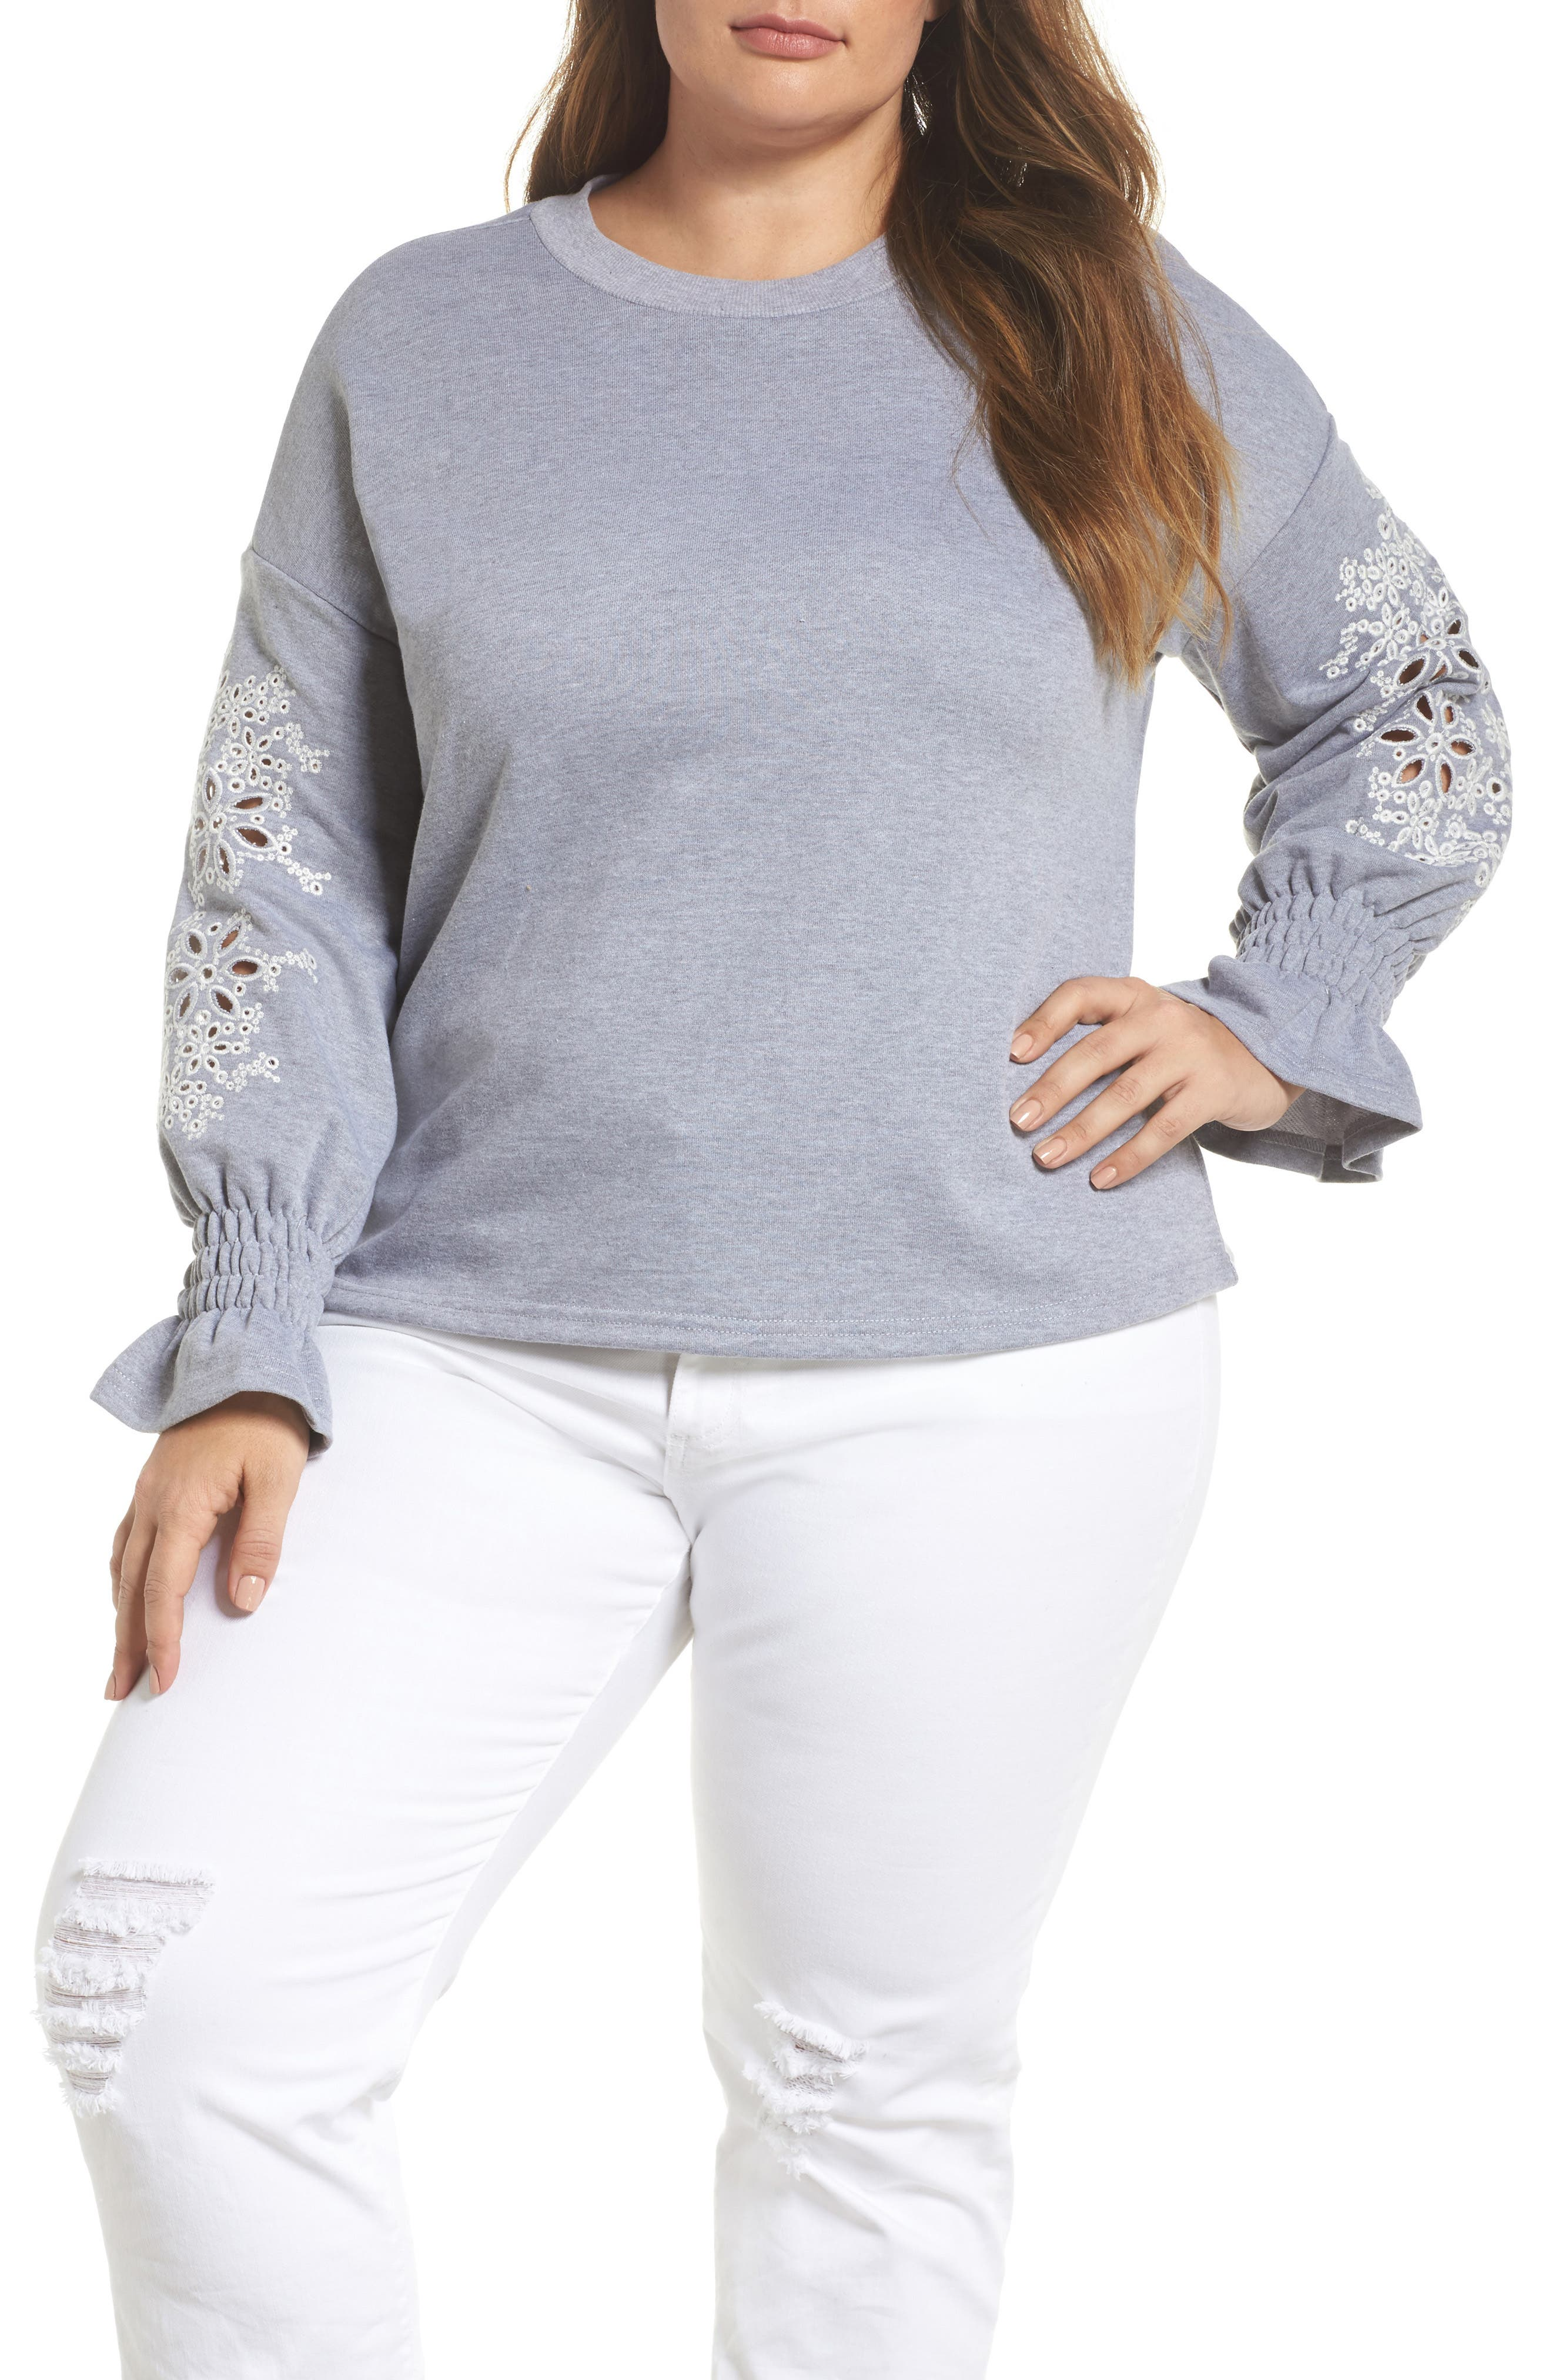 Broderie Anglaise Embellished Sweatshirt,                             Main thumbnail 1, color,                             020